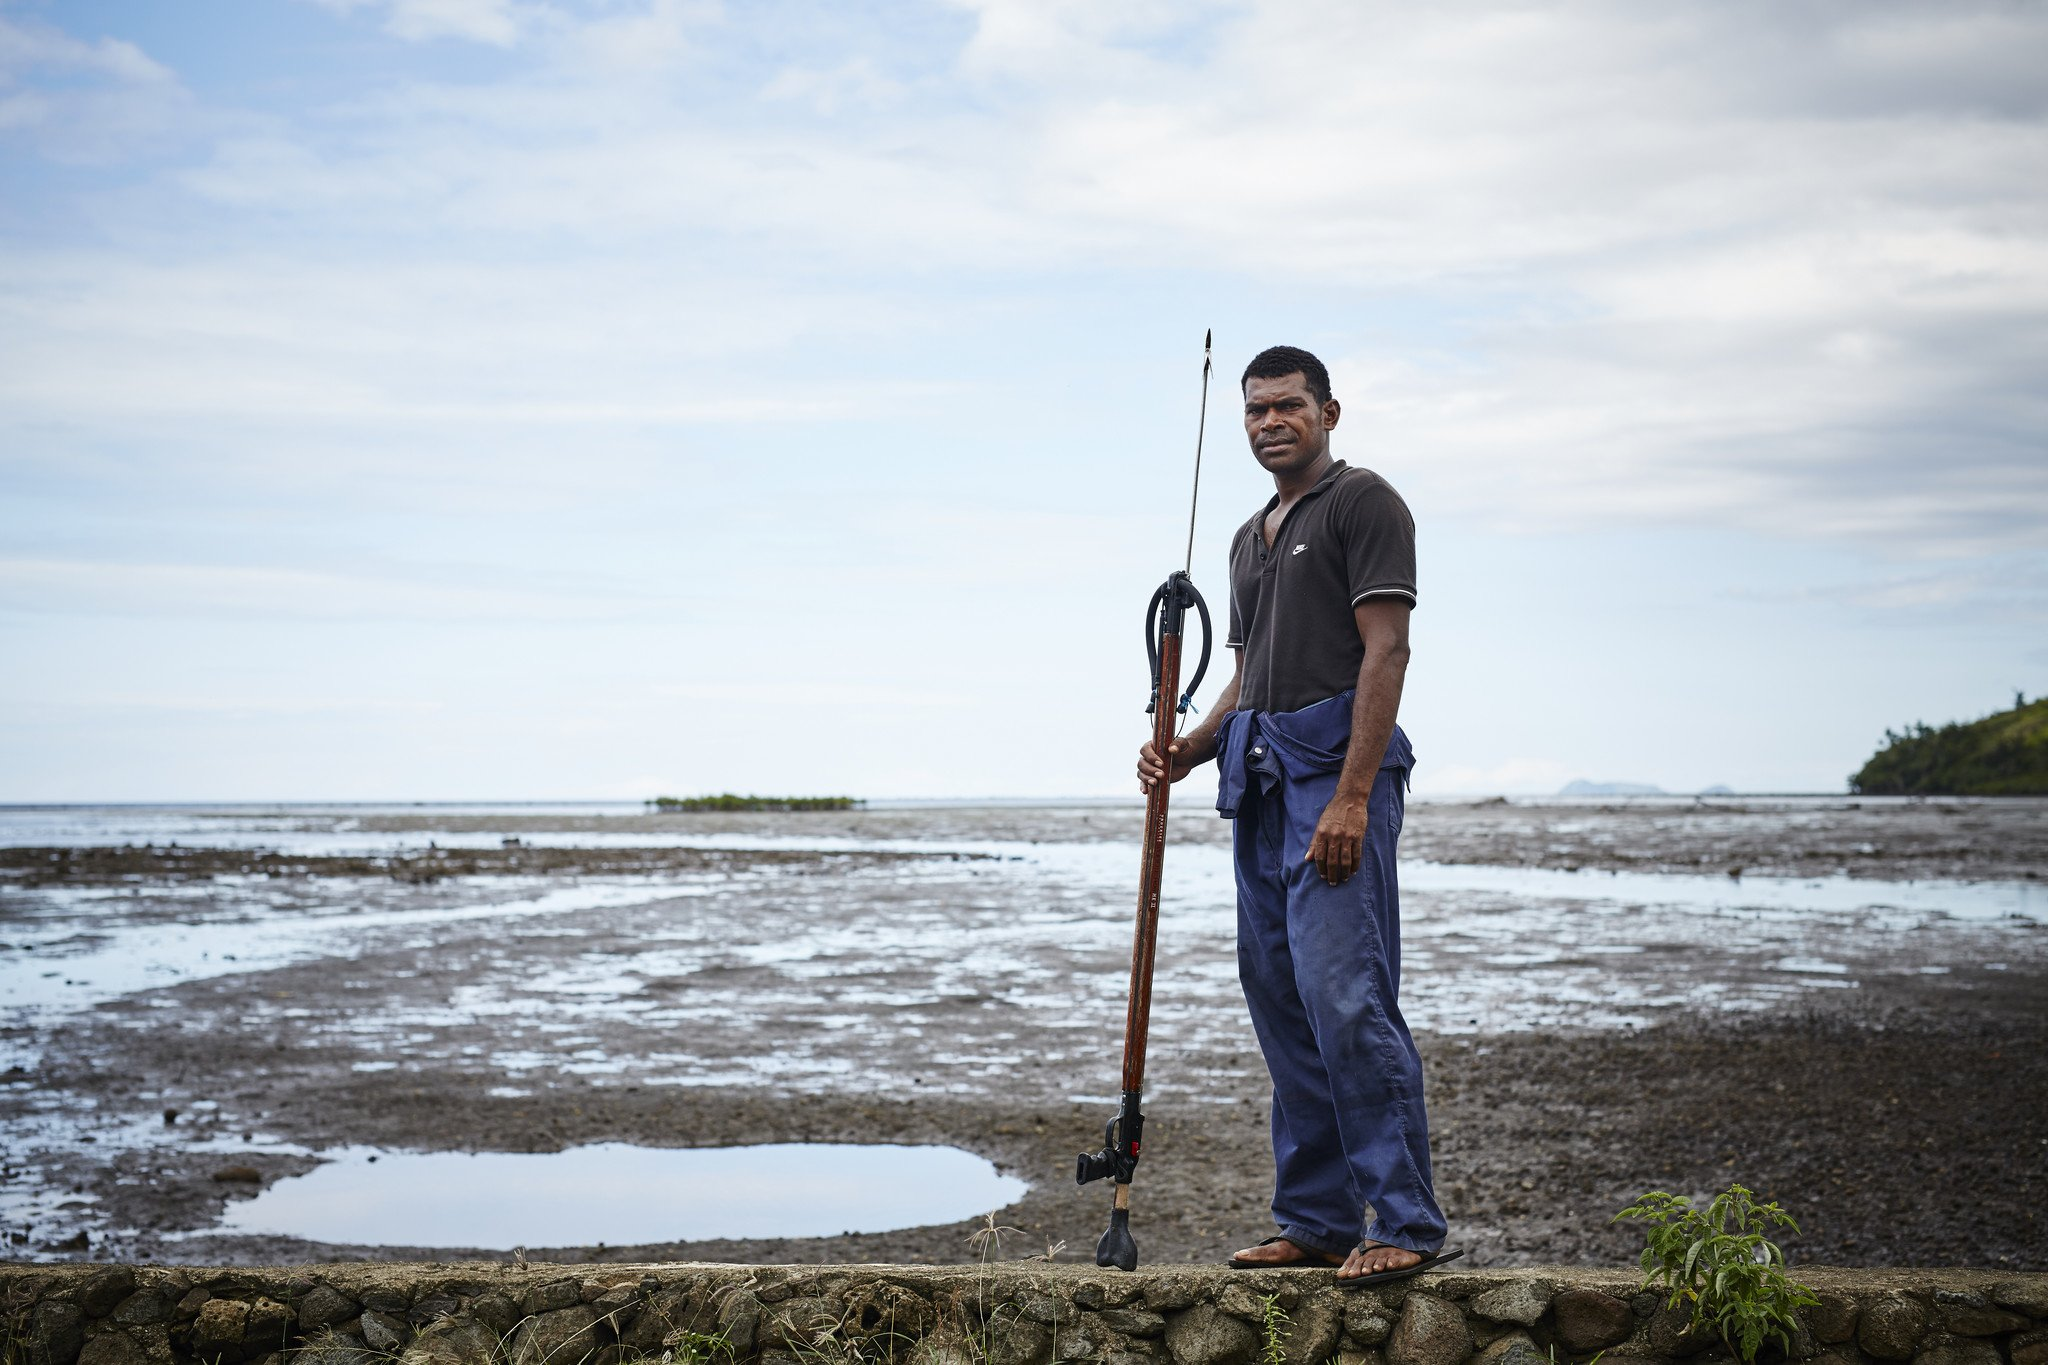 People living in Fiji are affected by climate change